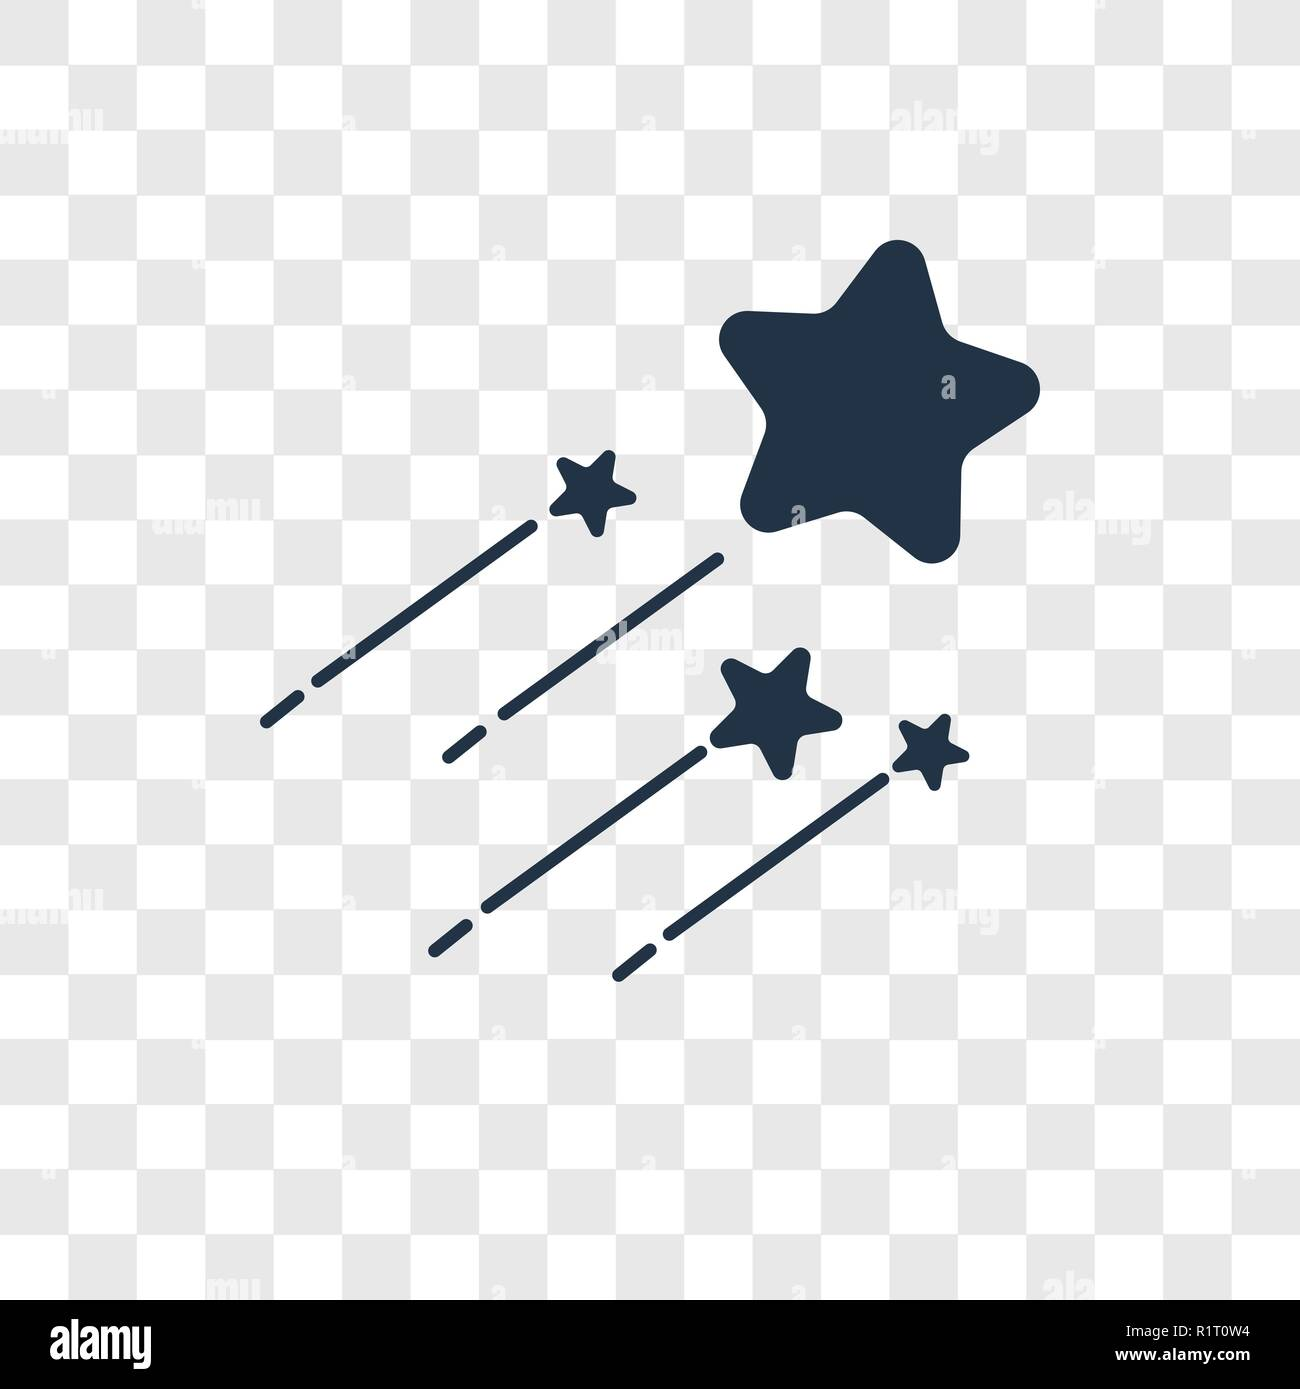 Shooting Star Vector Icon Isolated On Transparent Background Shooting Star Transparency Logo Concept Stock Vector Image Art Alamy Tired of the same old text messages? https www alamy com shooting star vector icon isolated on transparent background shooting star transparency logo concept image224876992 html